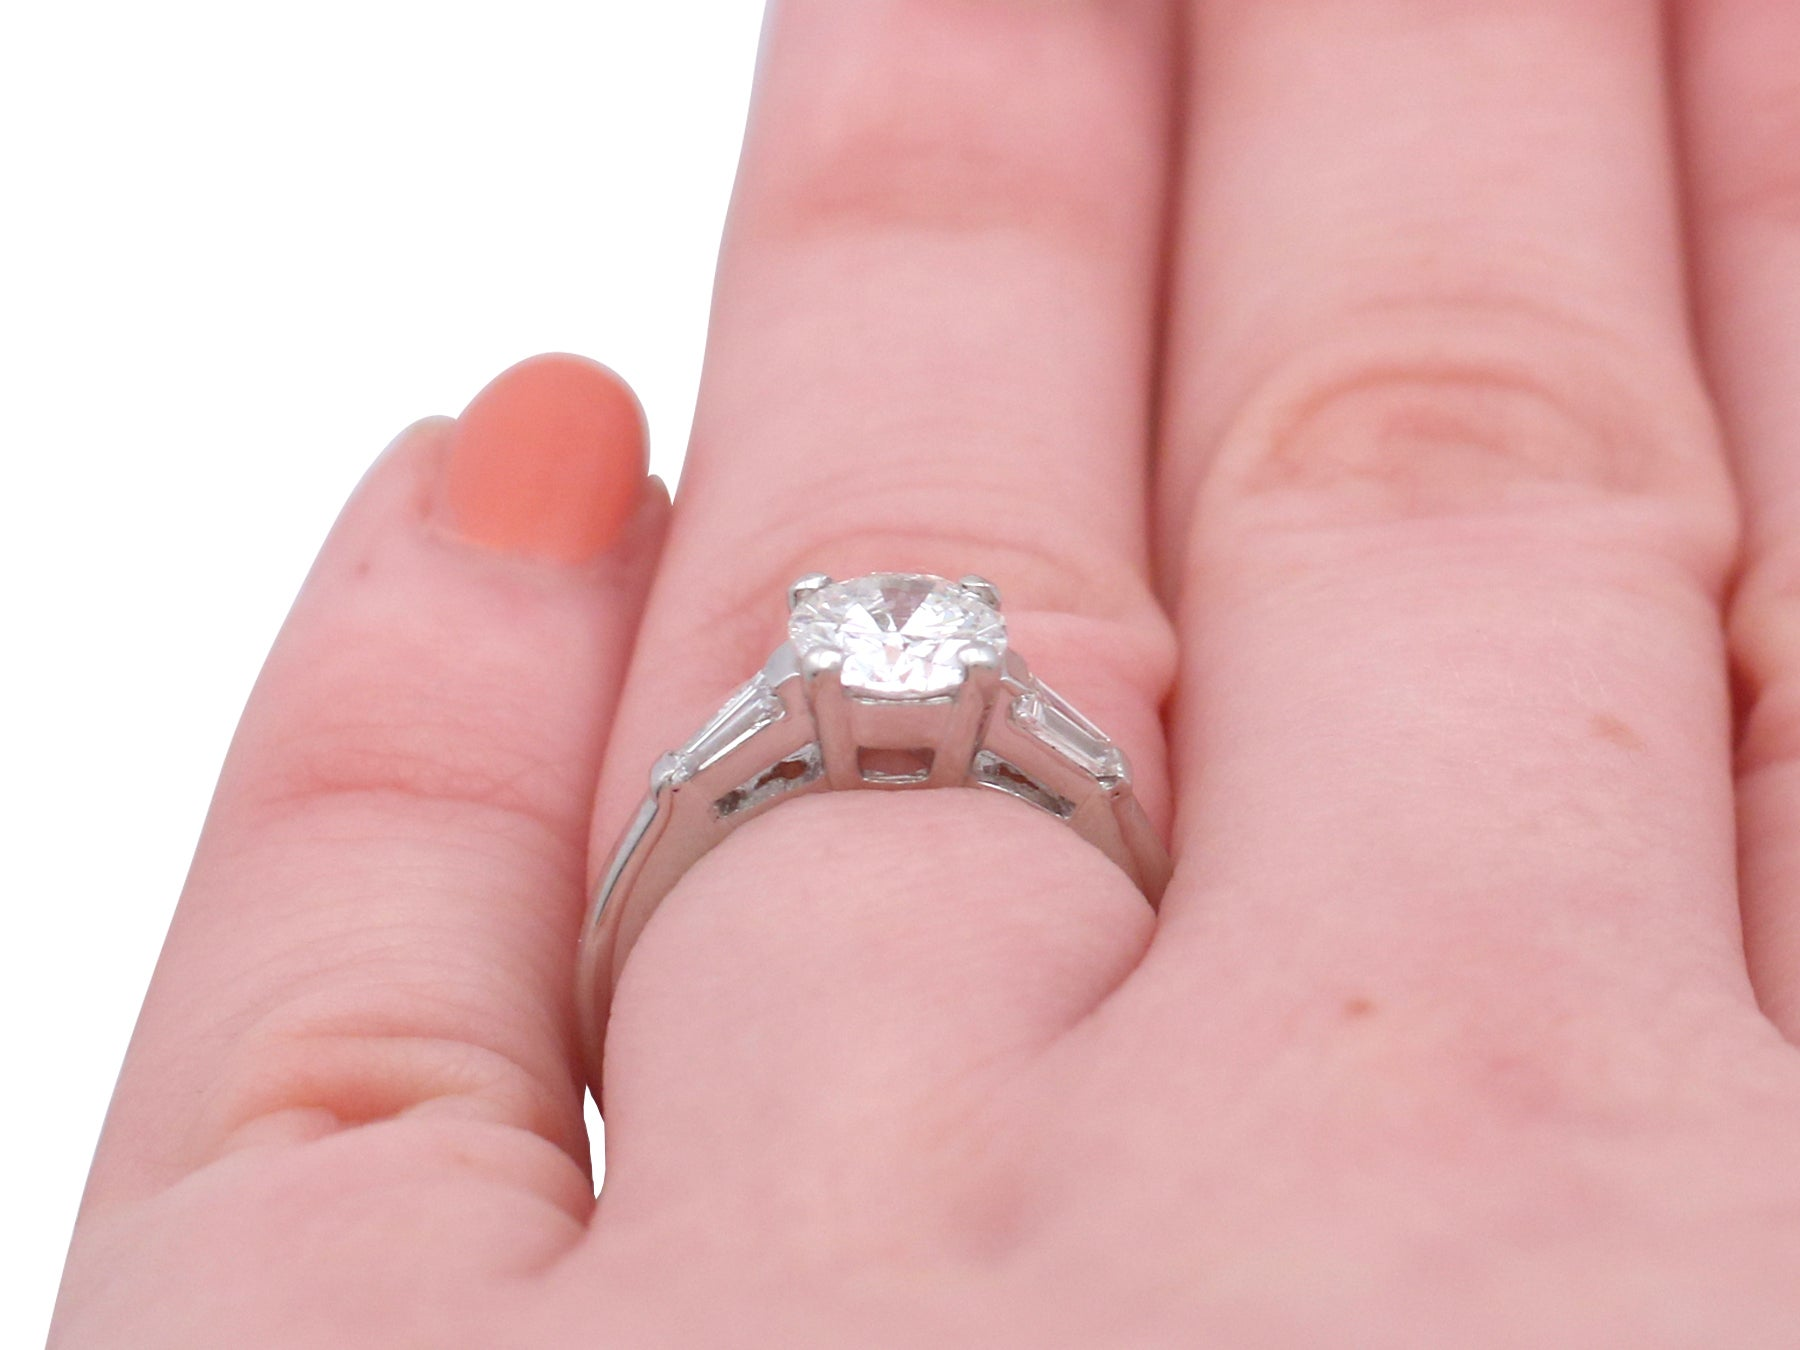 1950s 1.32 Ct Diamond and Platinum Solitaire Ring For Sale at 1stdibs